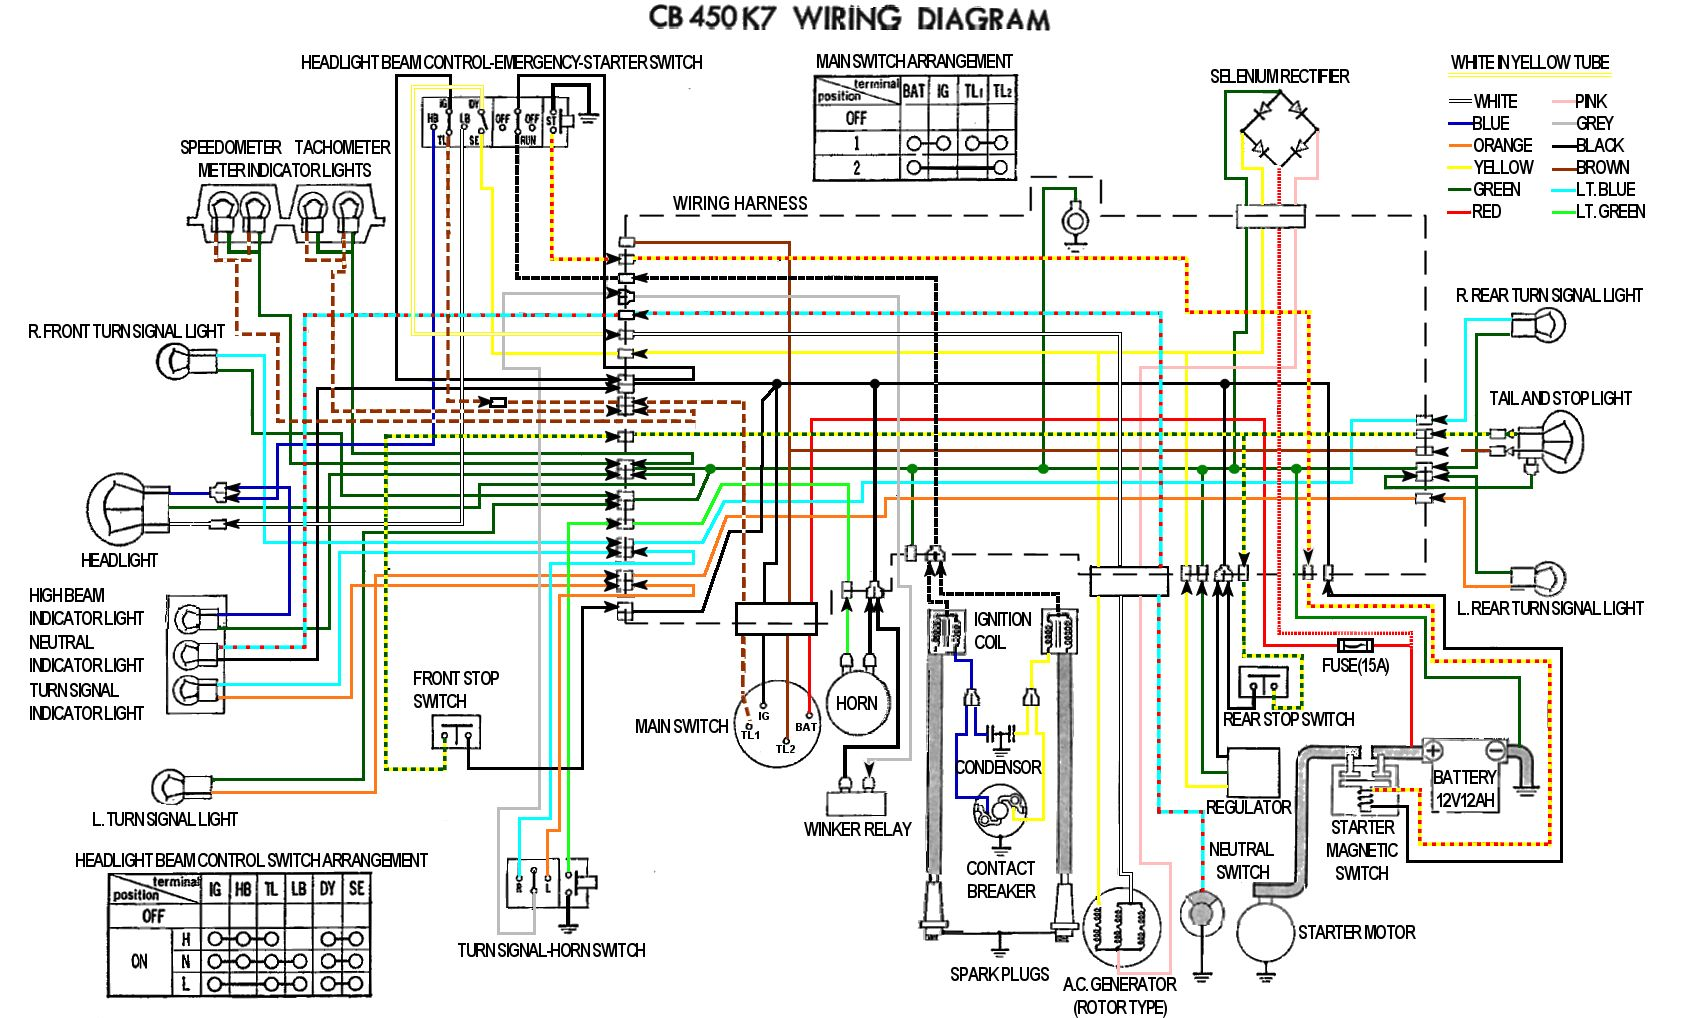 Honda Cb450 Wiring Diagram - Wiring Diagram Img on